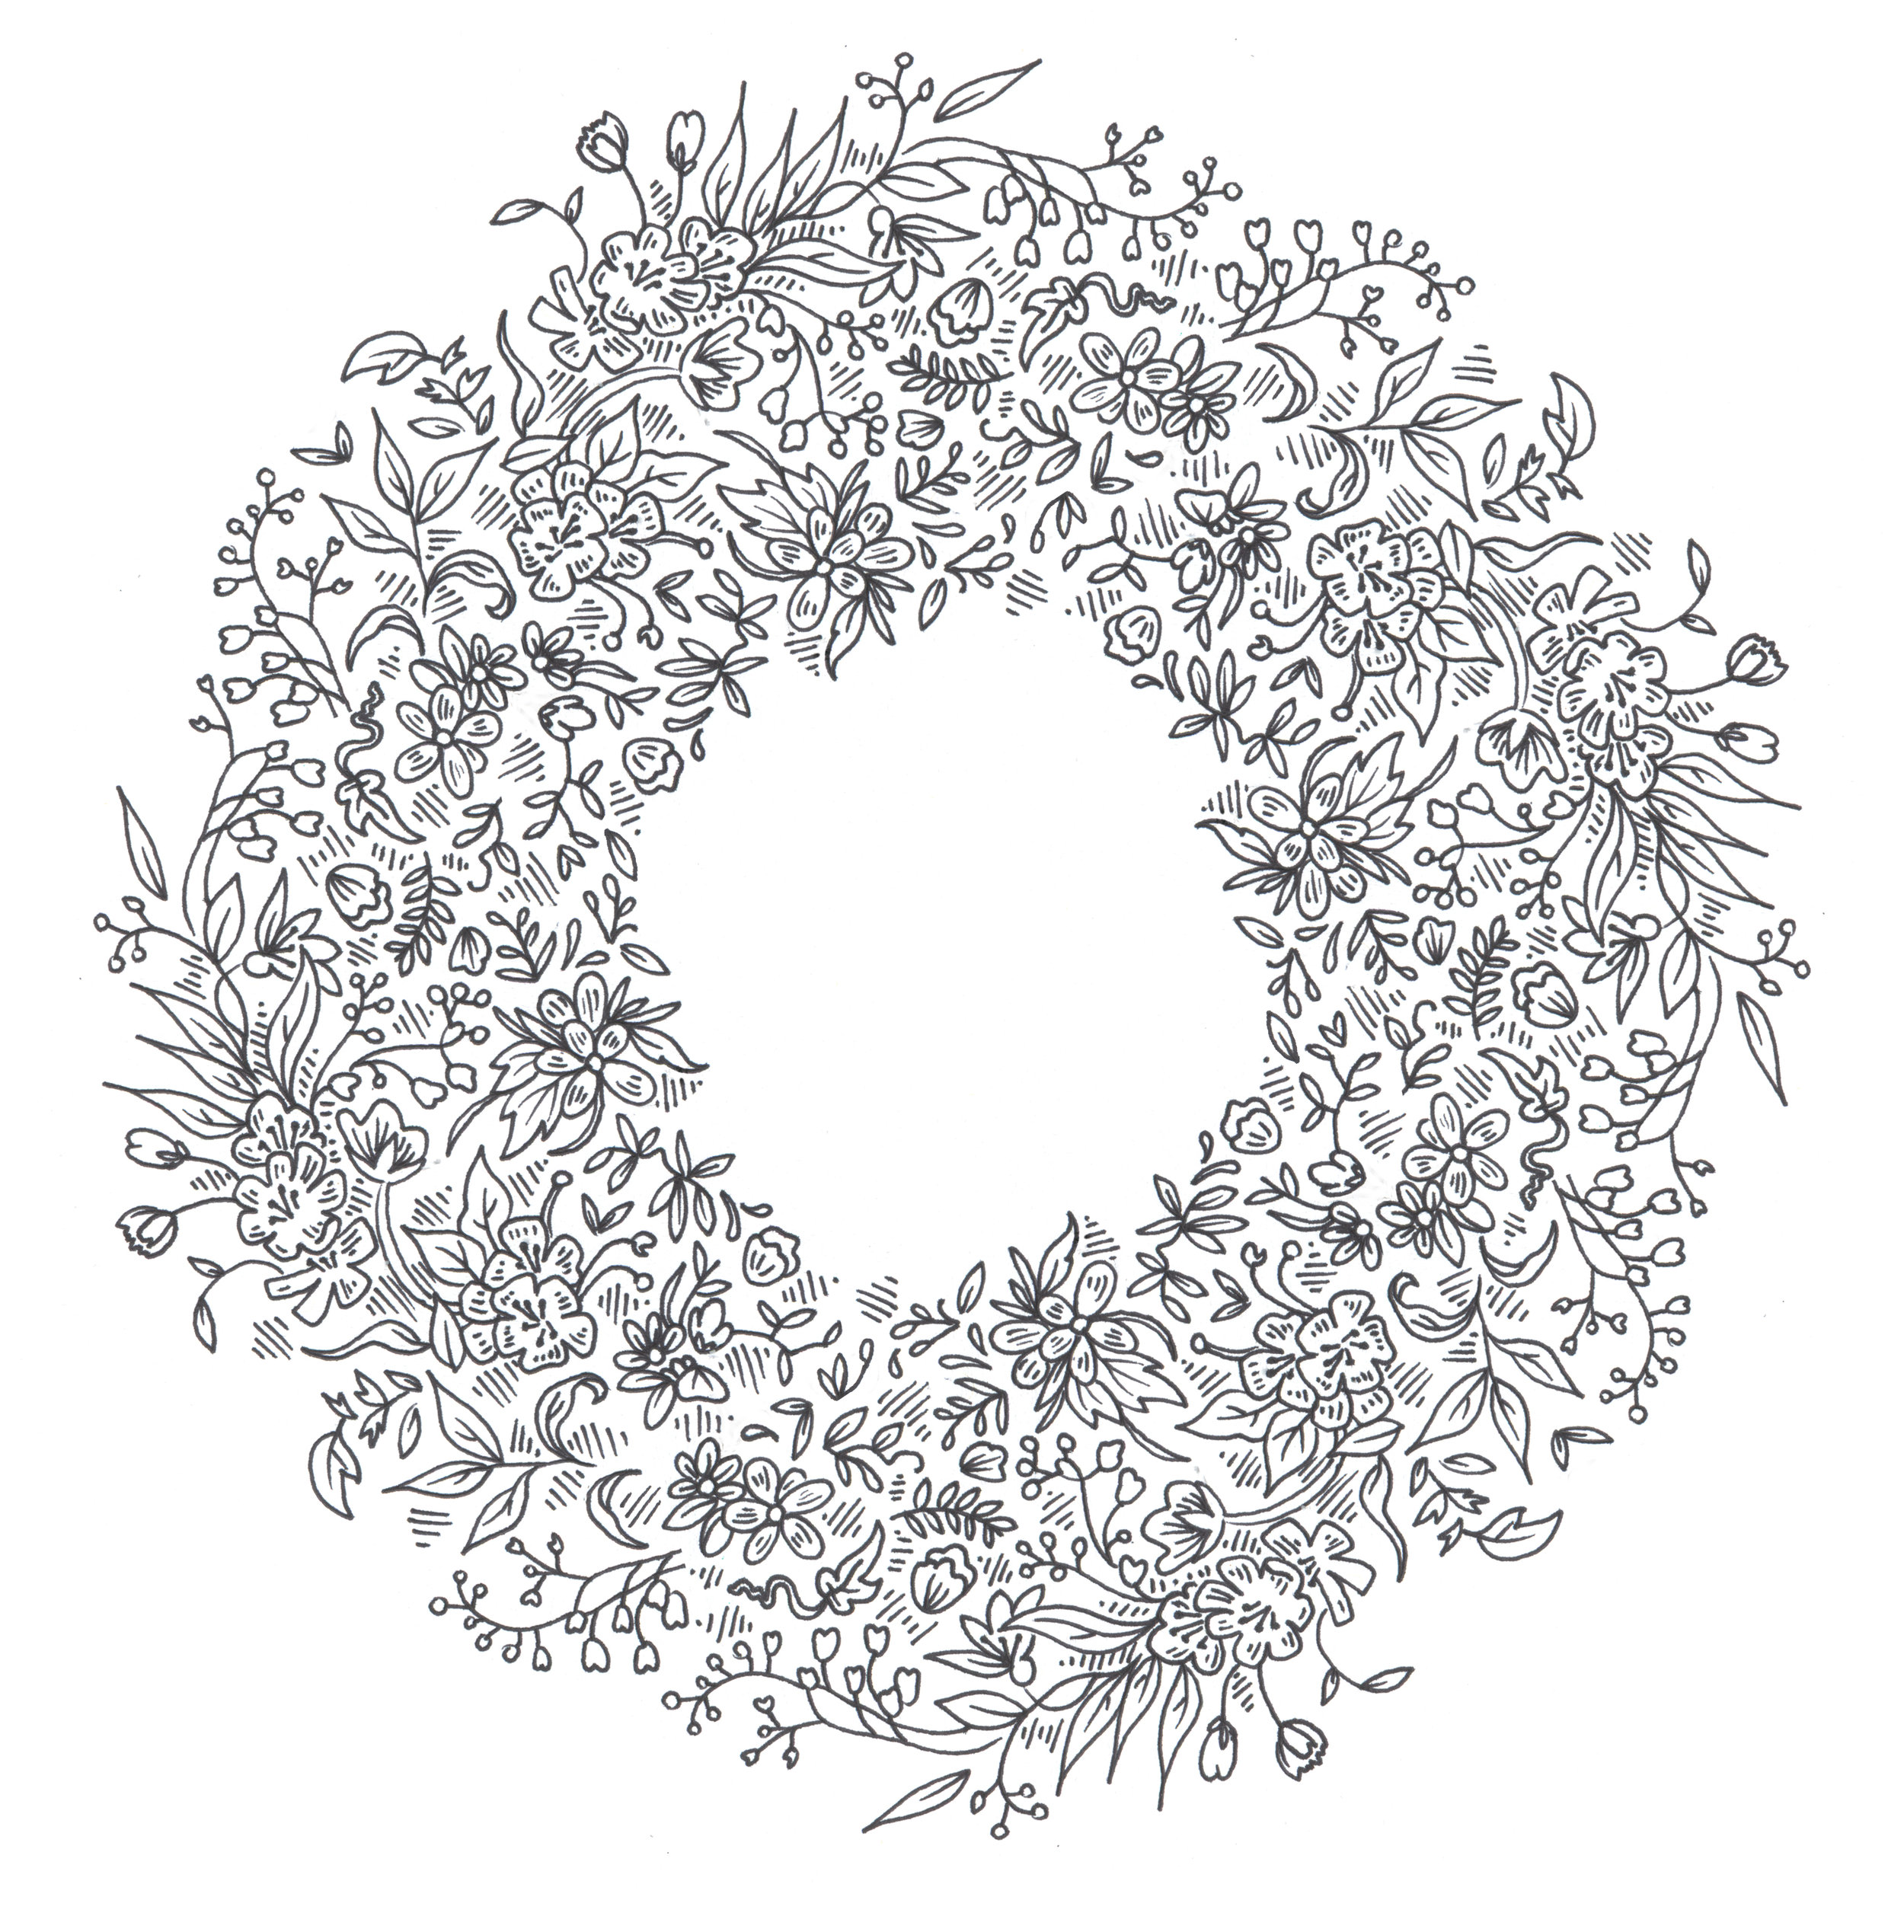 Stempel_Wreath.jpg